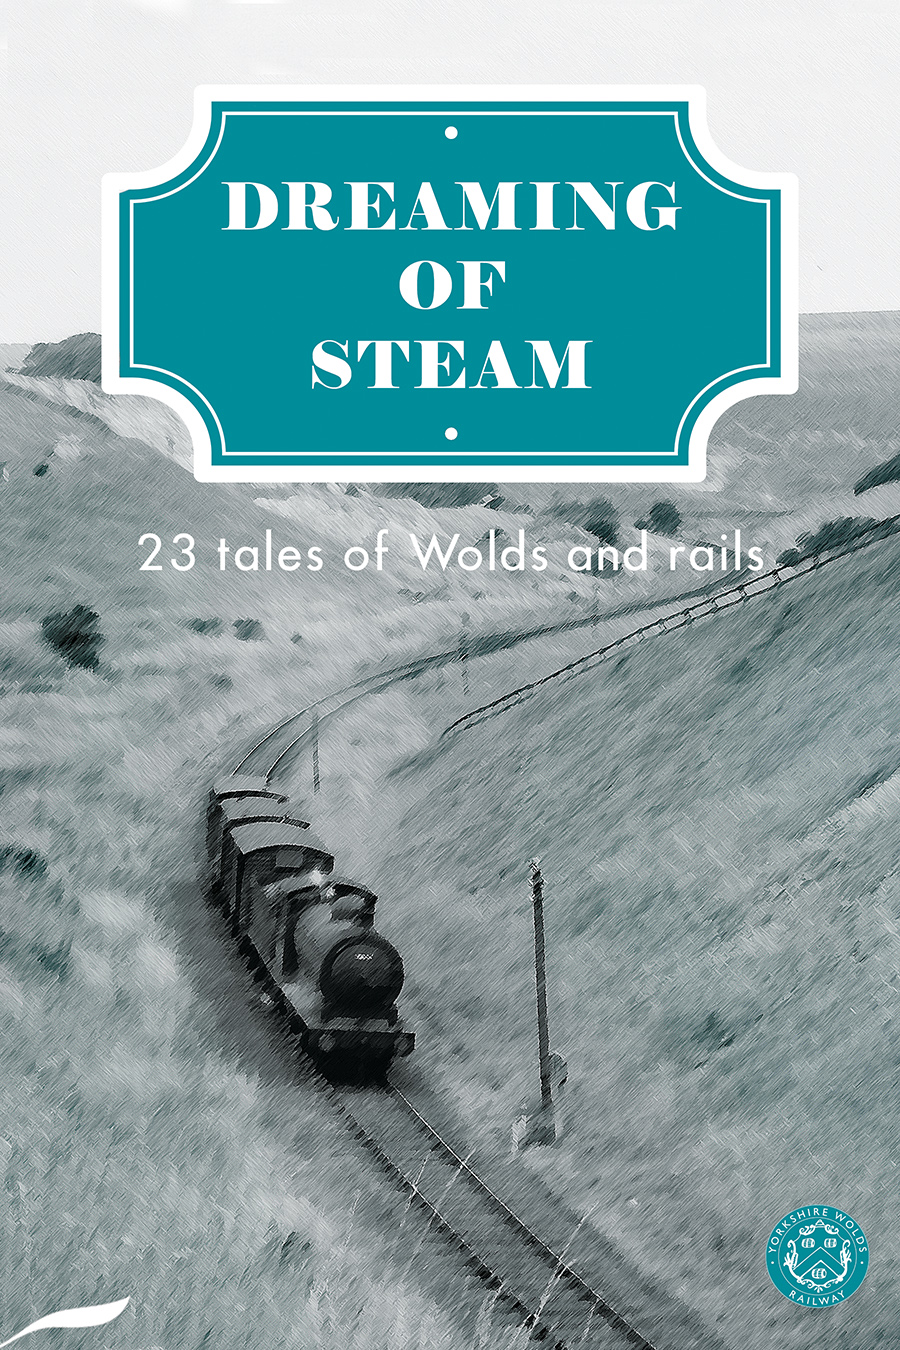 The cover of 'Dreaming of Steam'